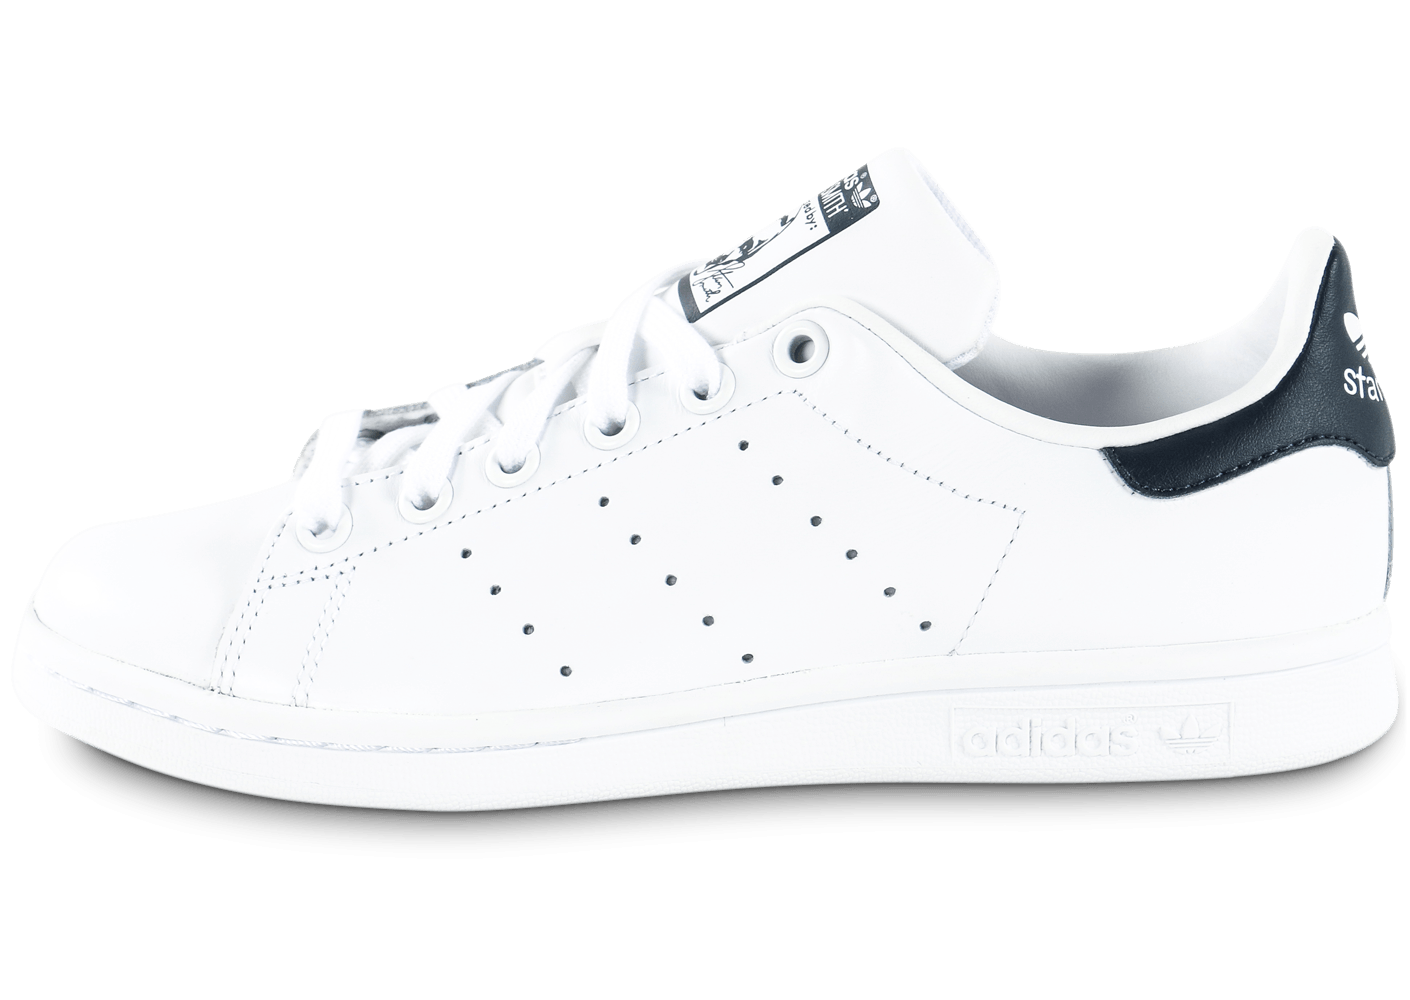 site full of Chaussures 50% off 853c6 0c3cc marine blanc adidas stan